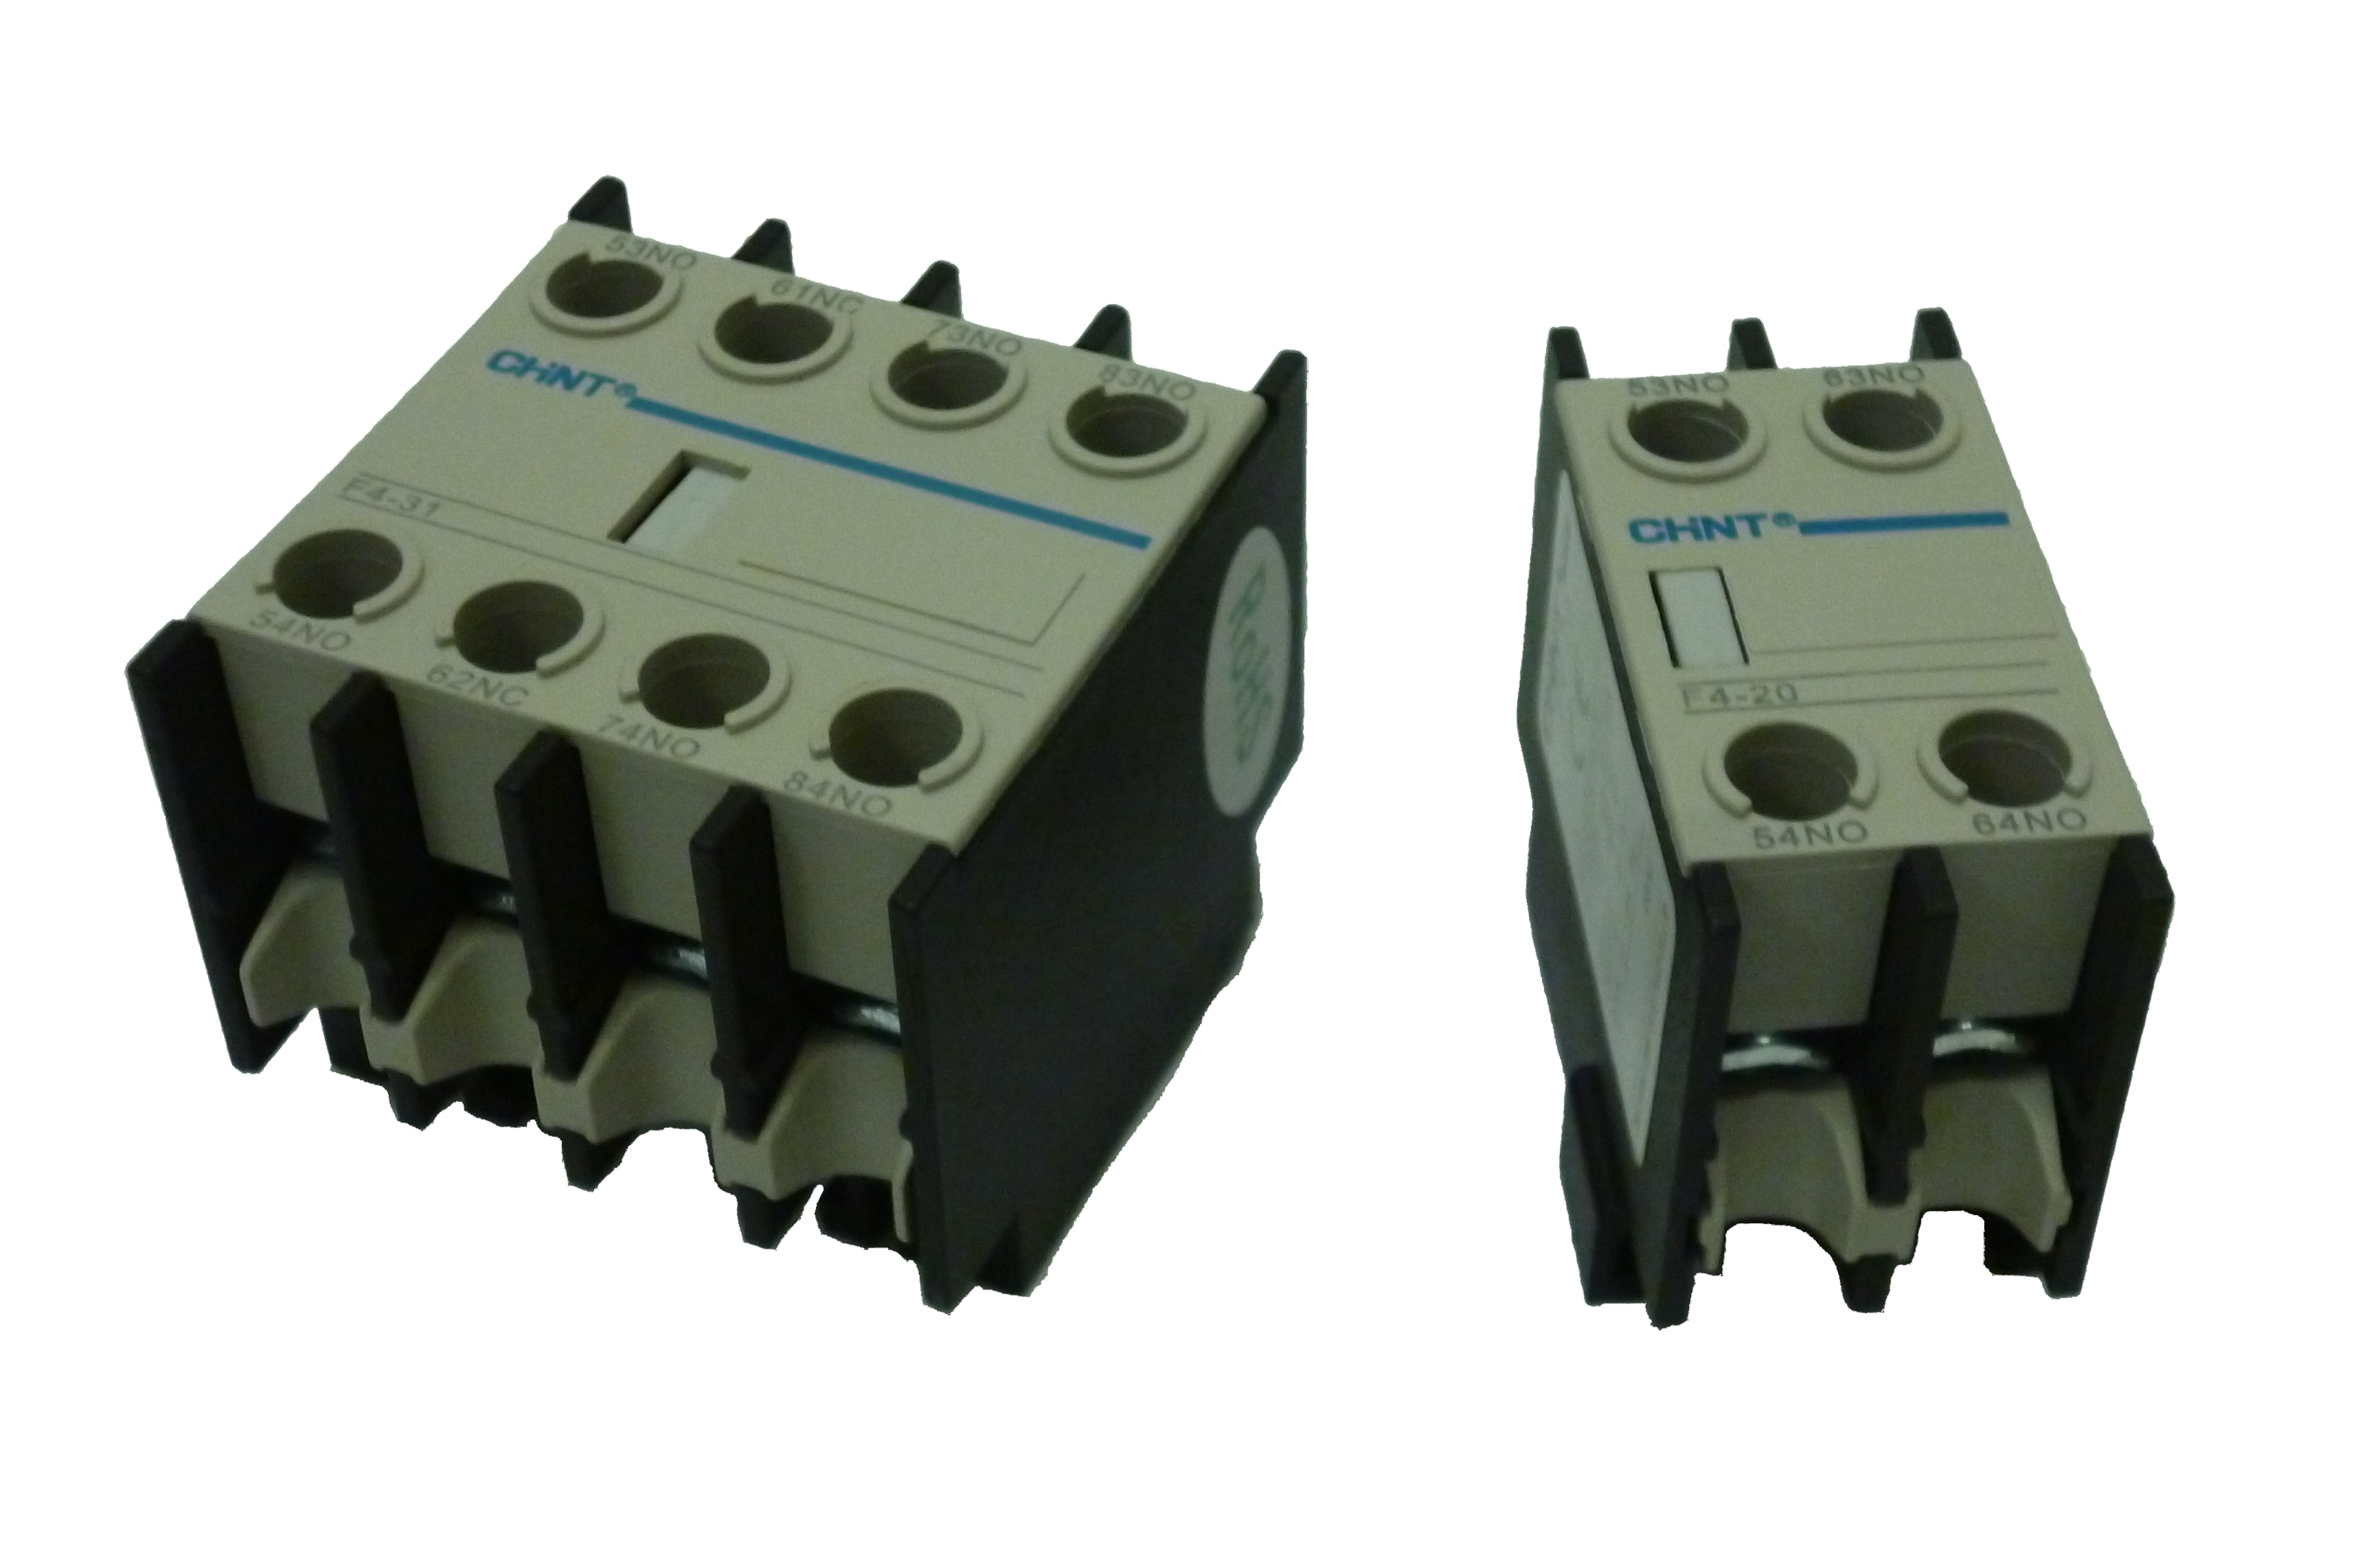 Accessories for Chint NC1 Contactors